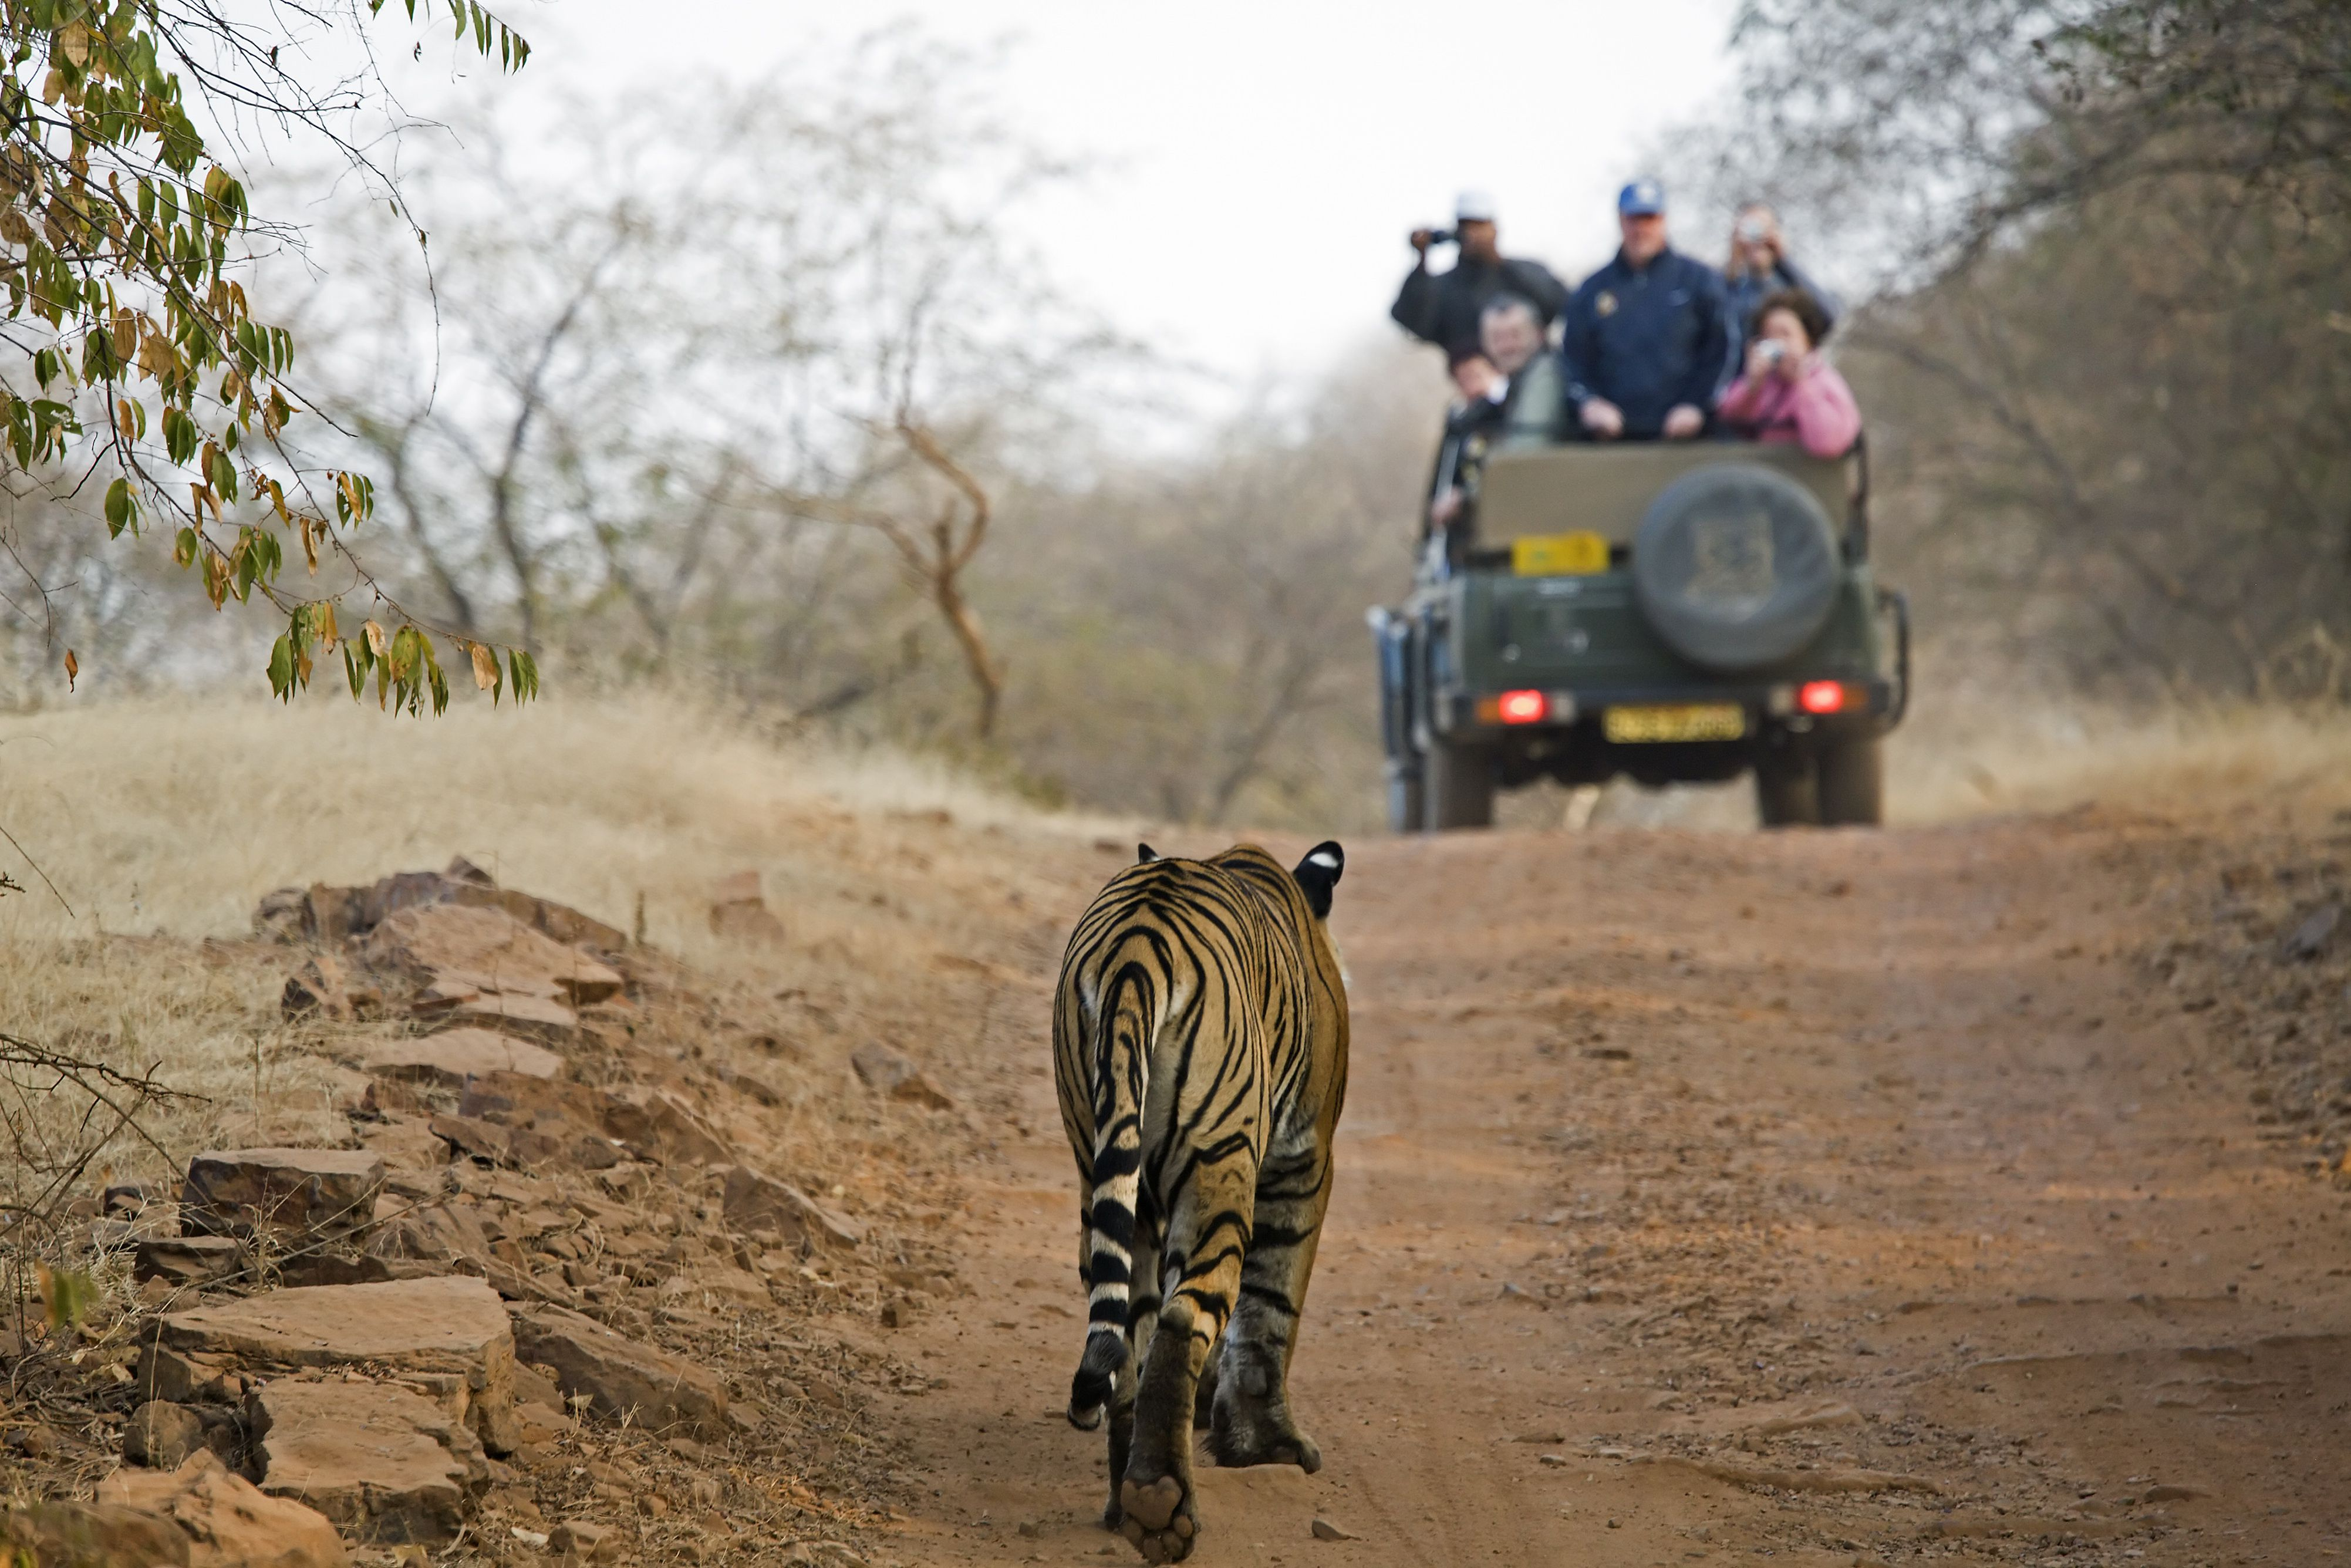 13 Top National Parks in India to Visit